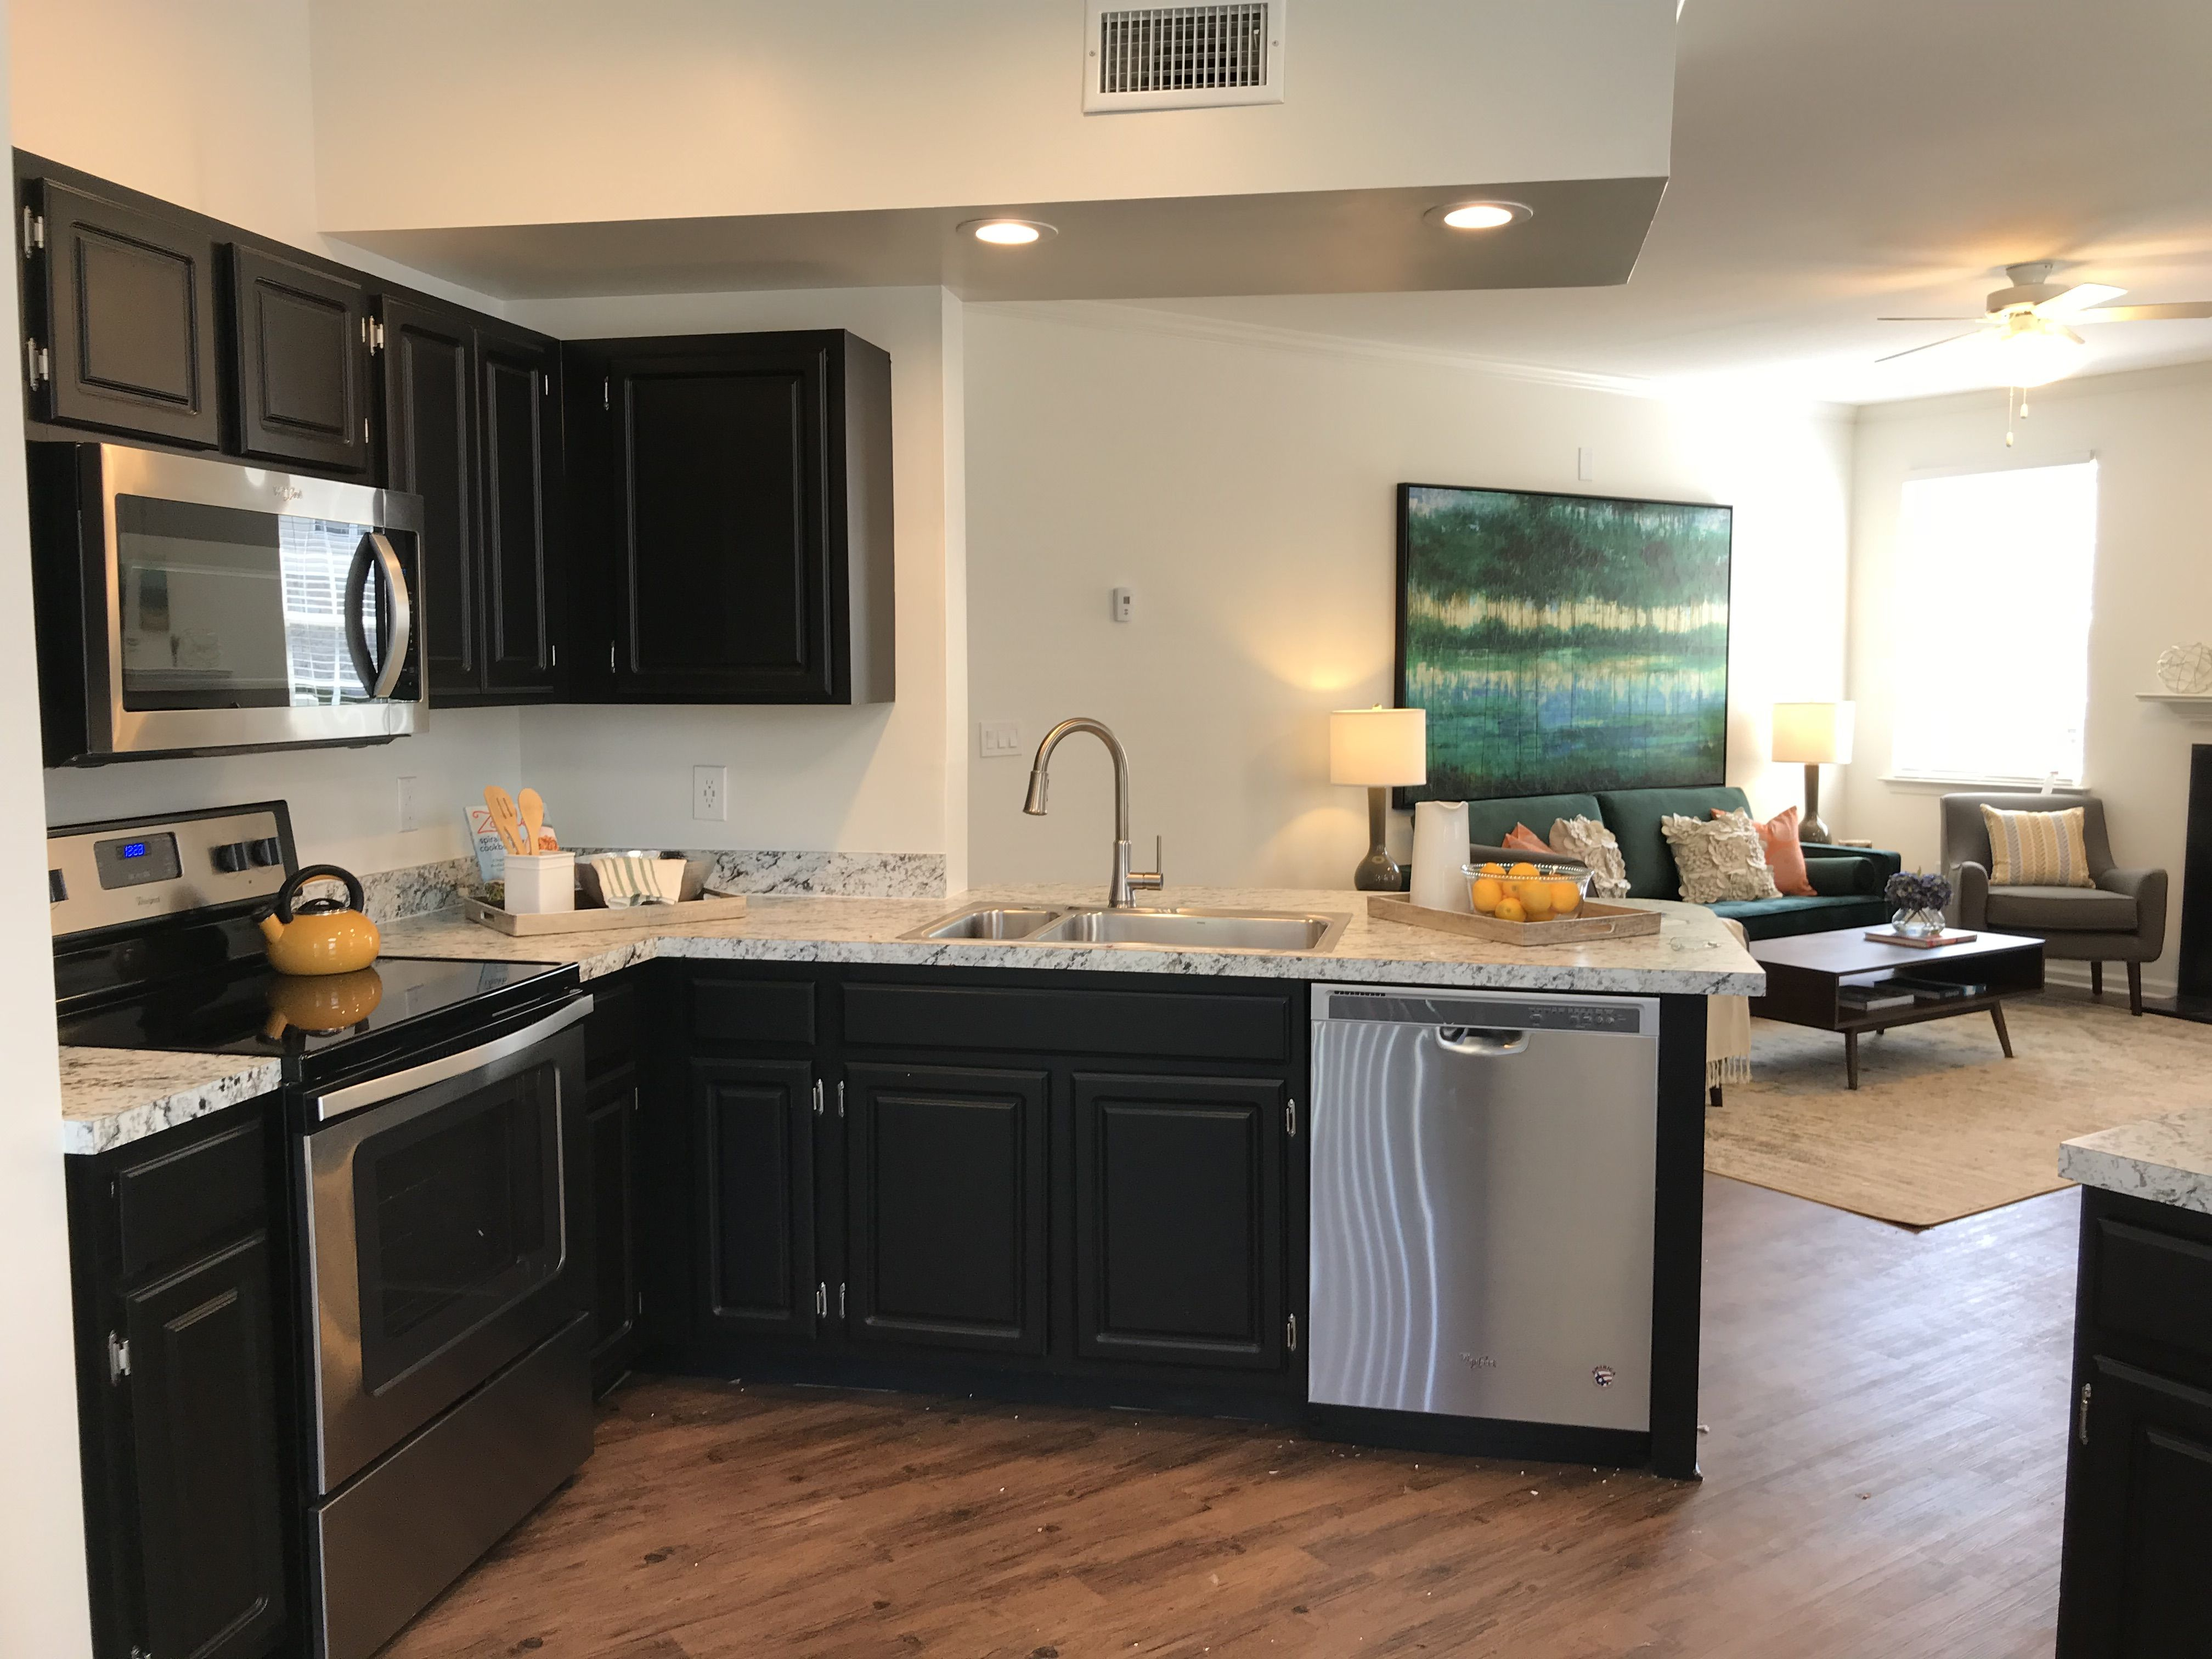 Three Bedroom Apartments For Rent In Limerick Pa Apartments For Rent Luxury Apartments Apartment